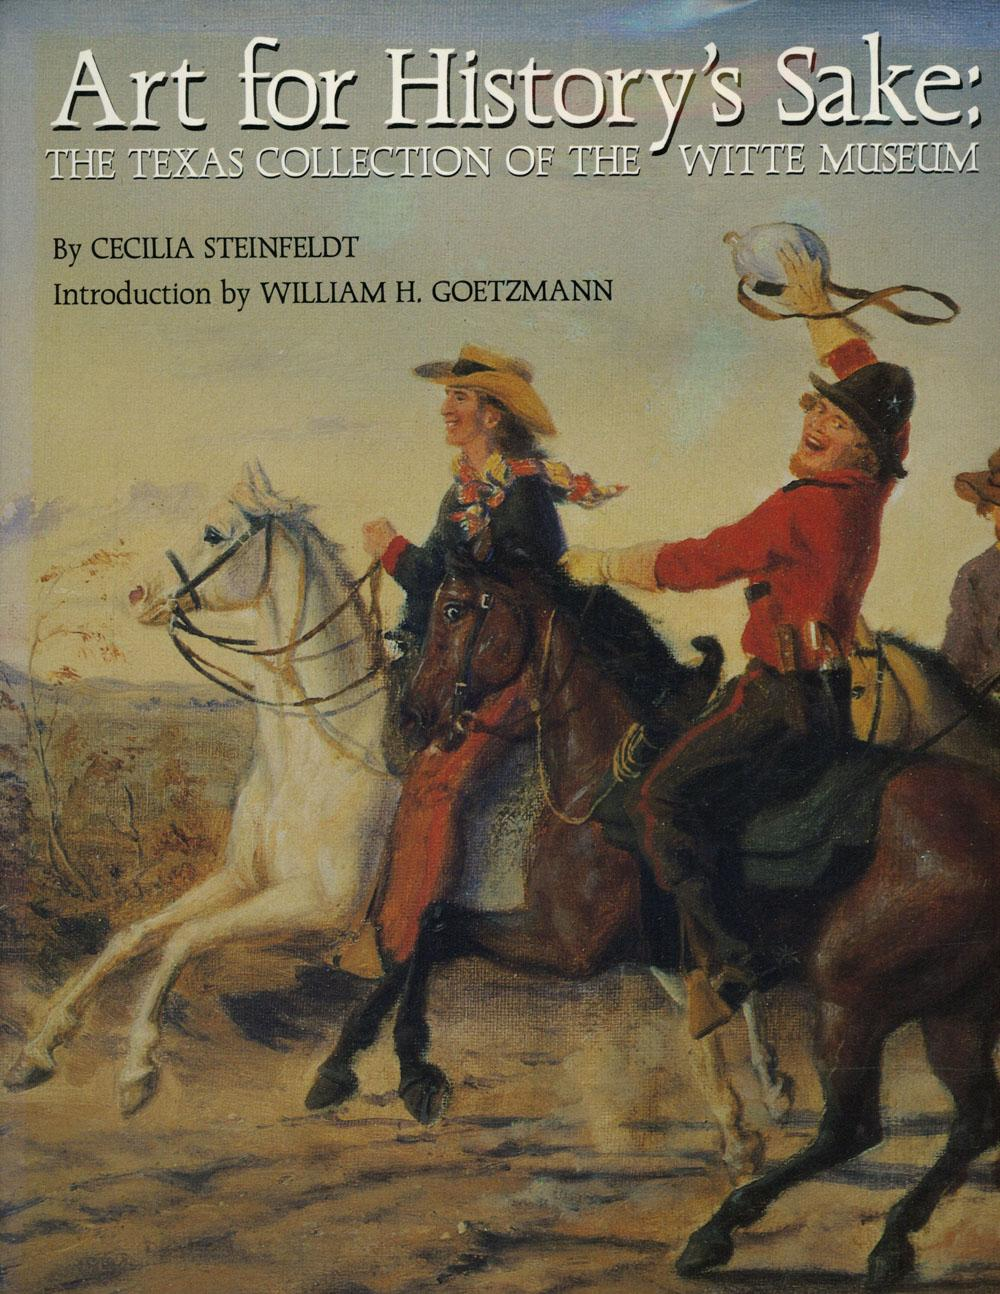 Art for History's Sake: The Texas Collection of the Witte Museum - Steinfeldt, Cecilia; William H. Goetzmann, intro